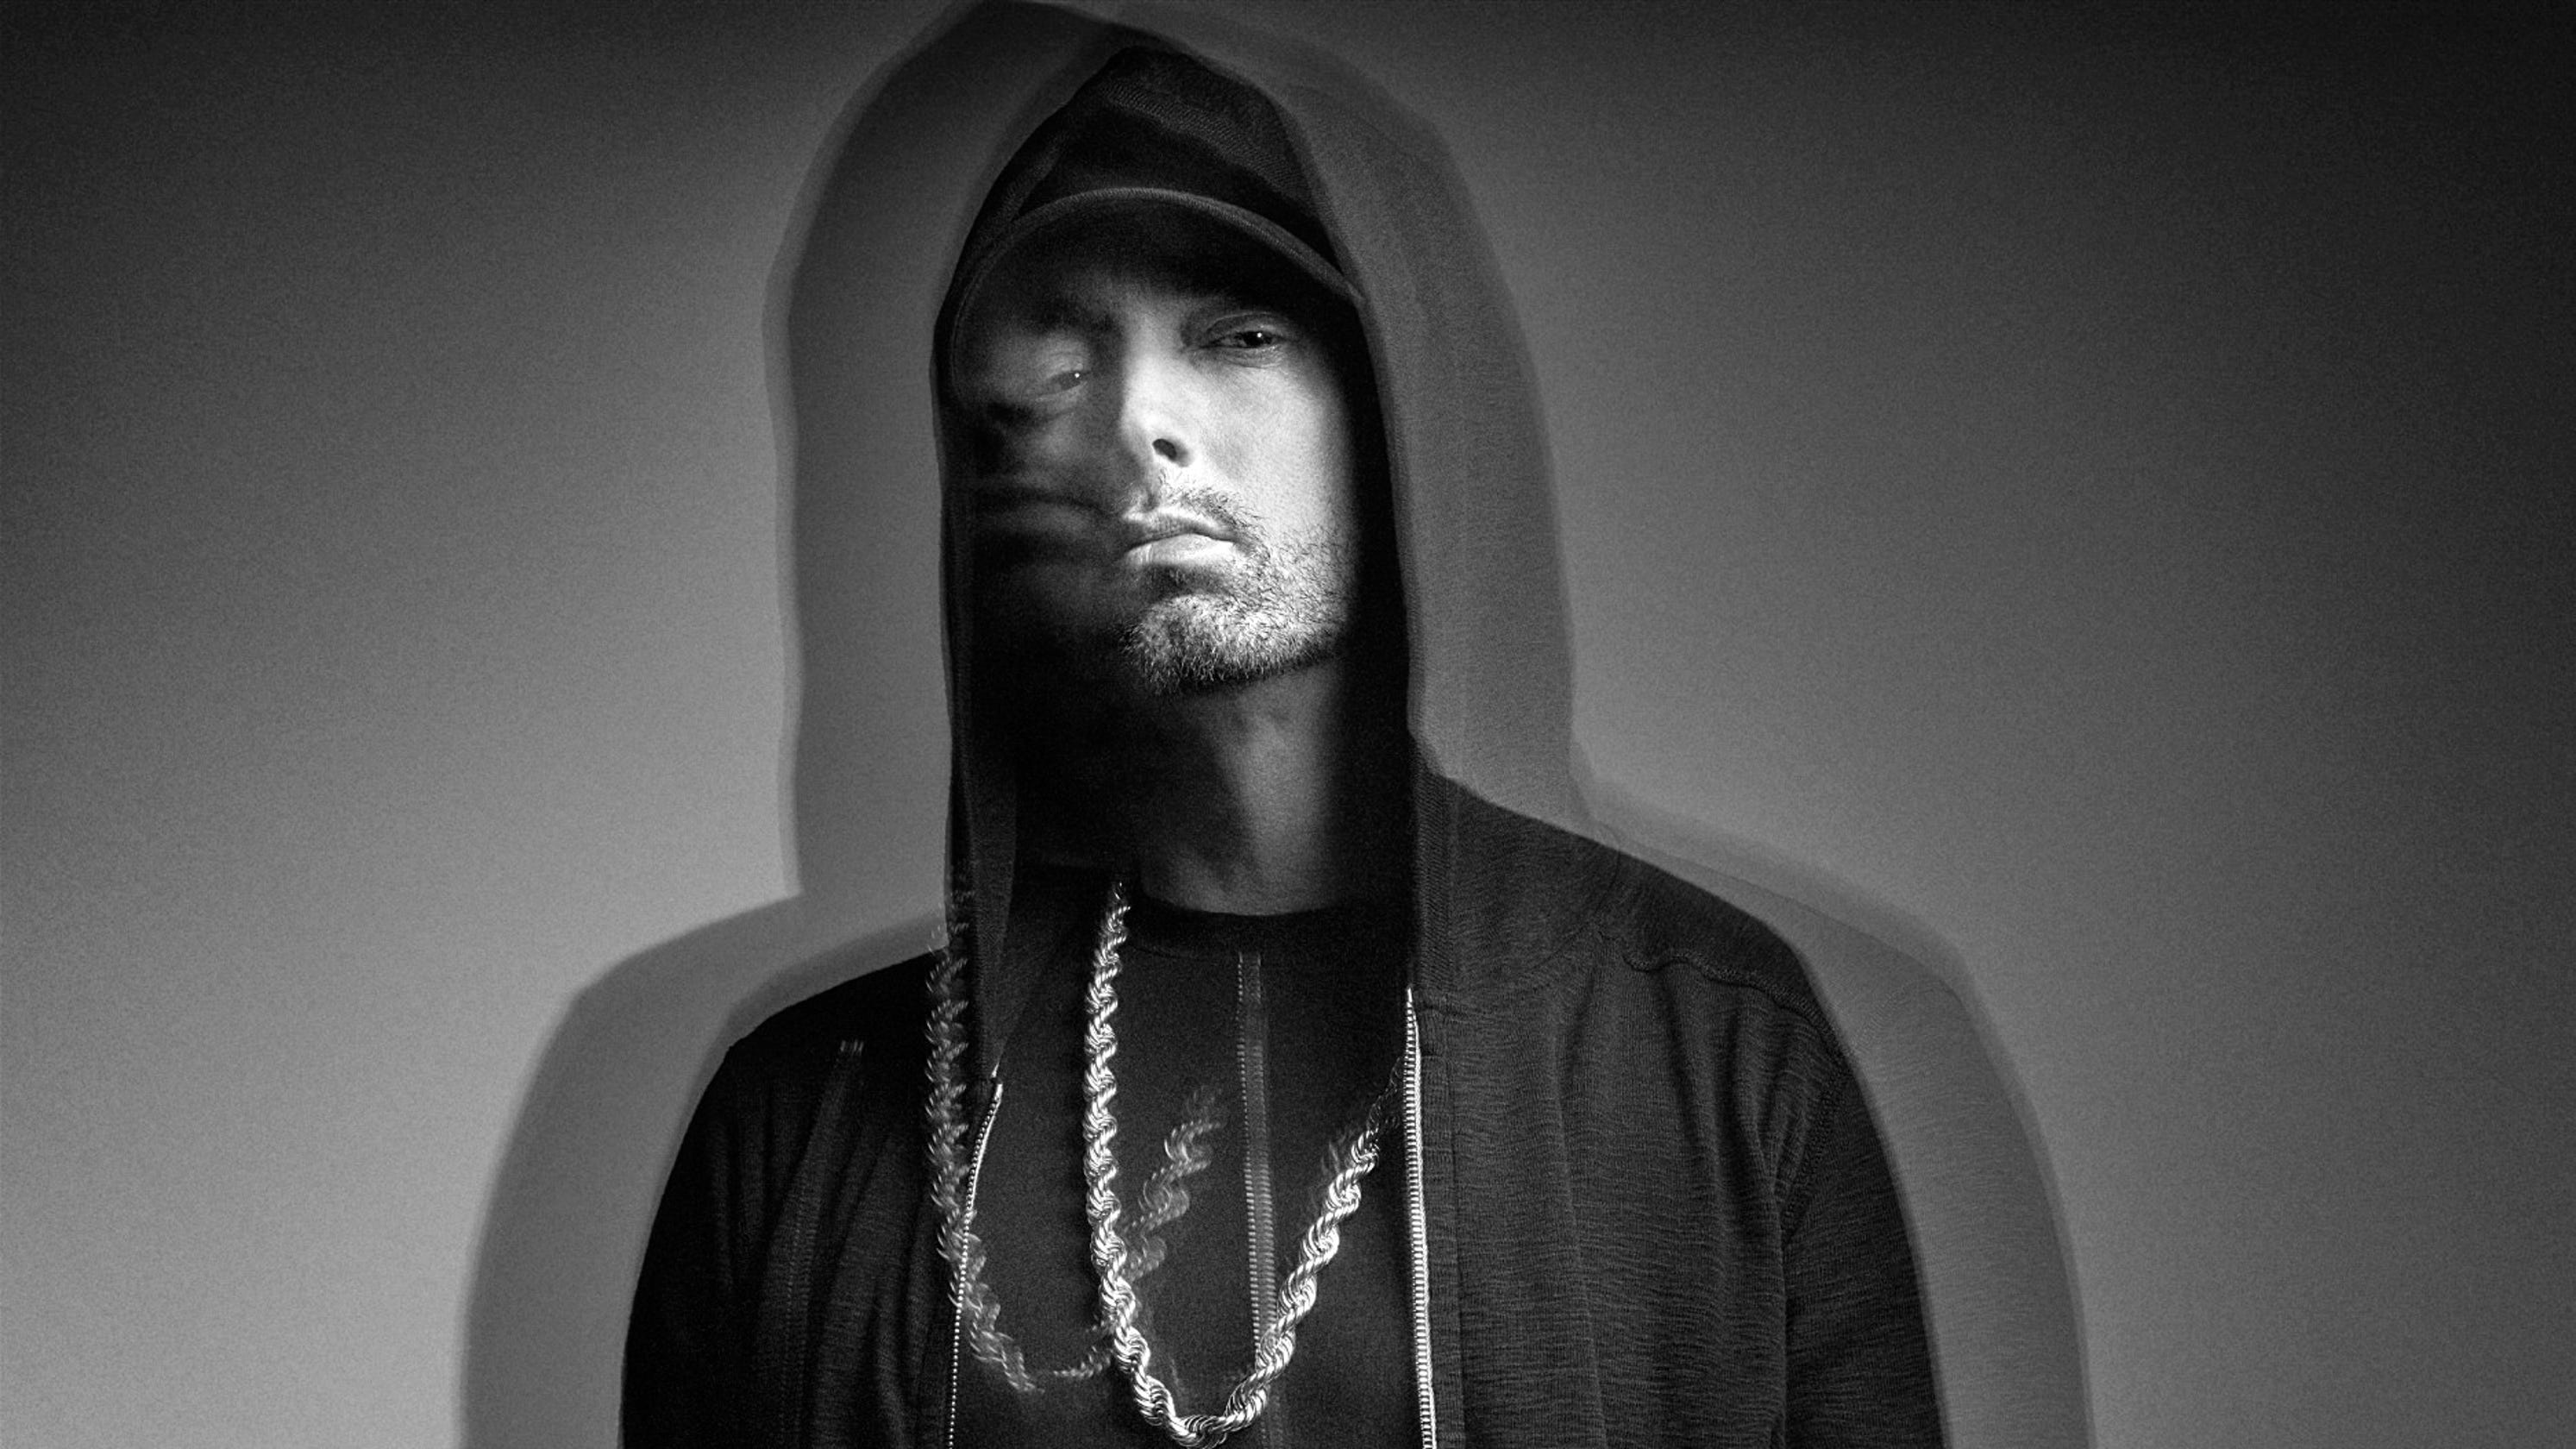 Eminem Responds To Machine Gun Kelly Track It Just Felt Pitiful